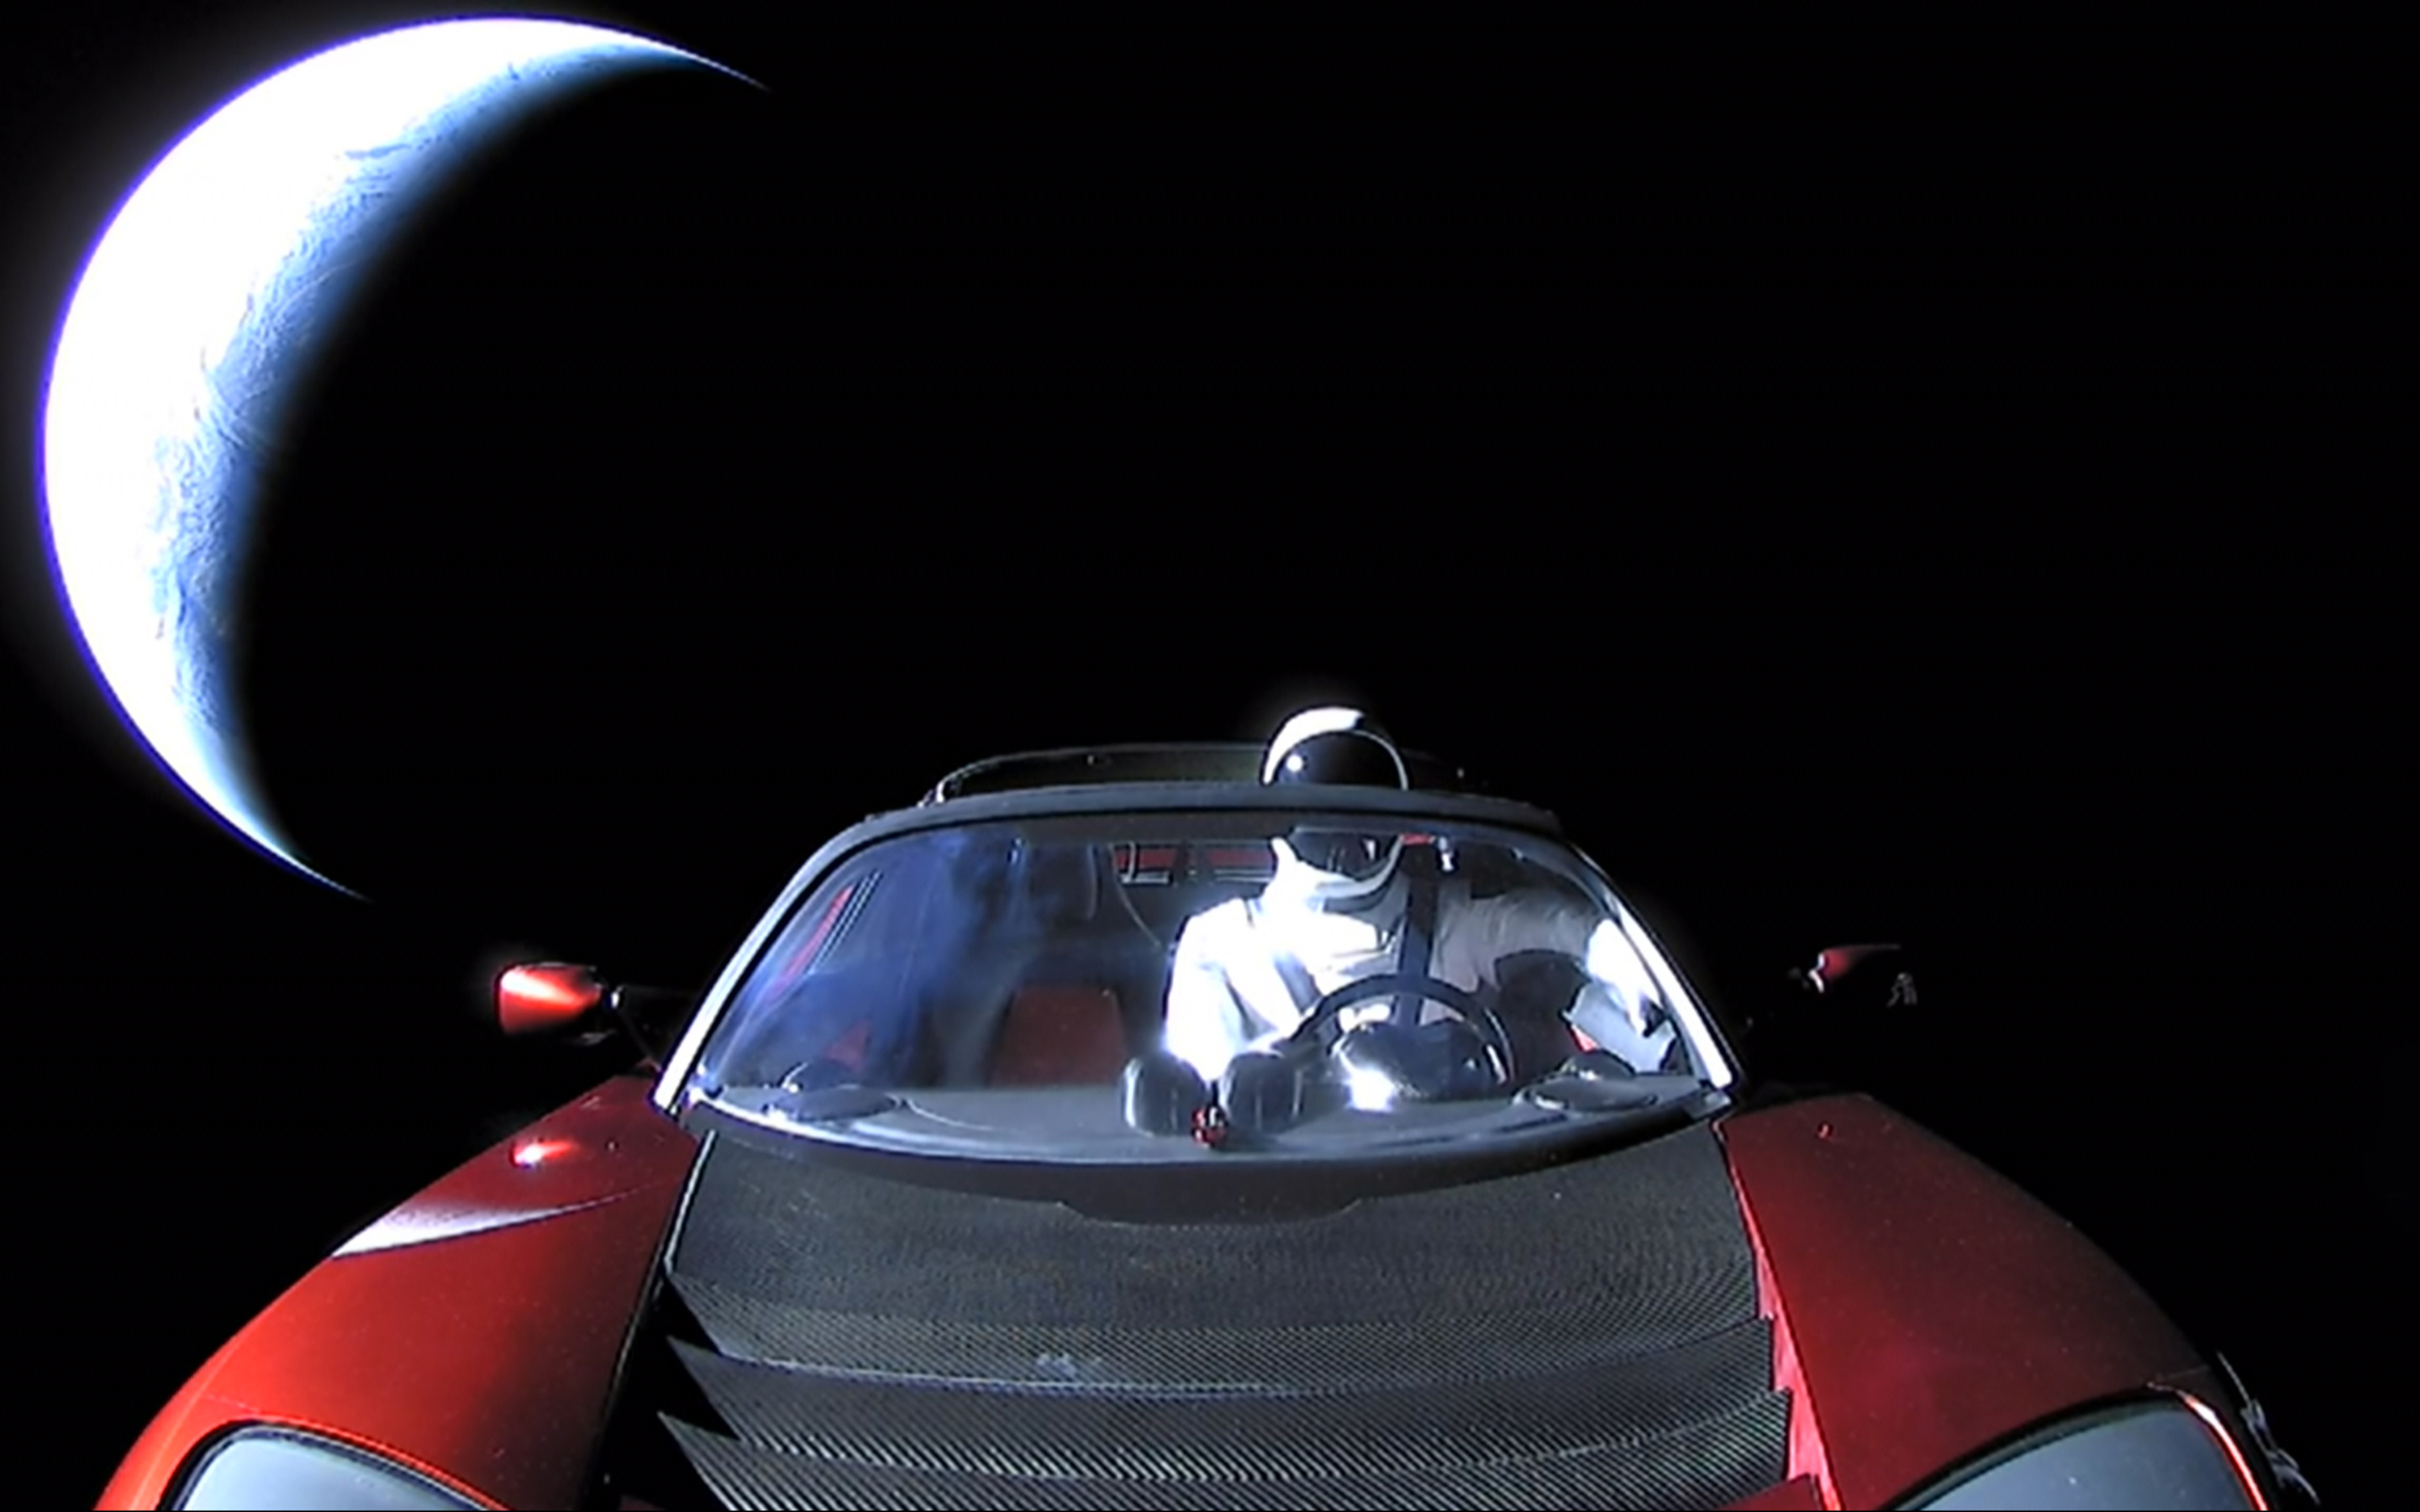 2880x1800 Tesla Roadster In Space With Space Suit Man ...